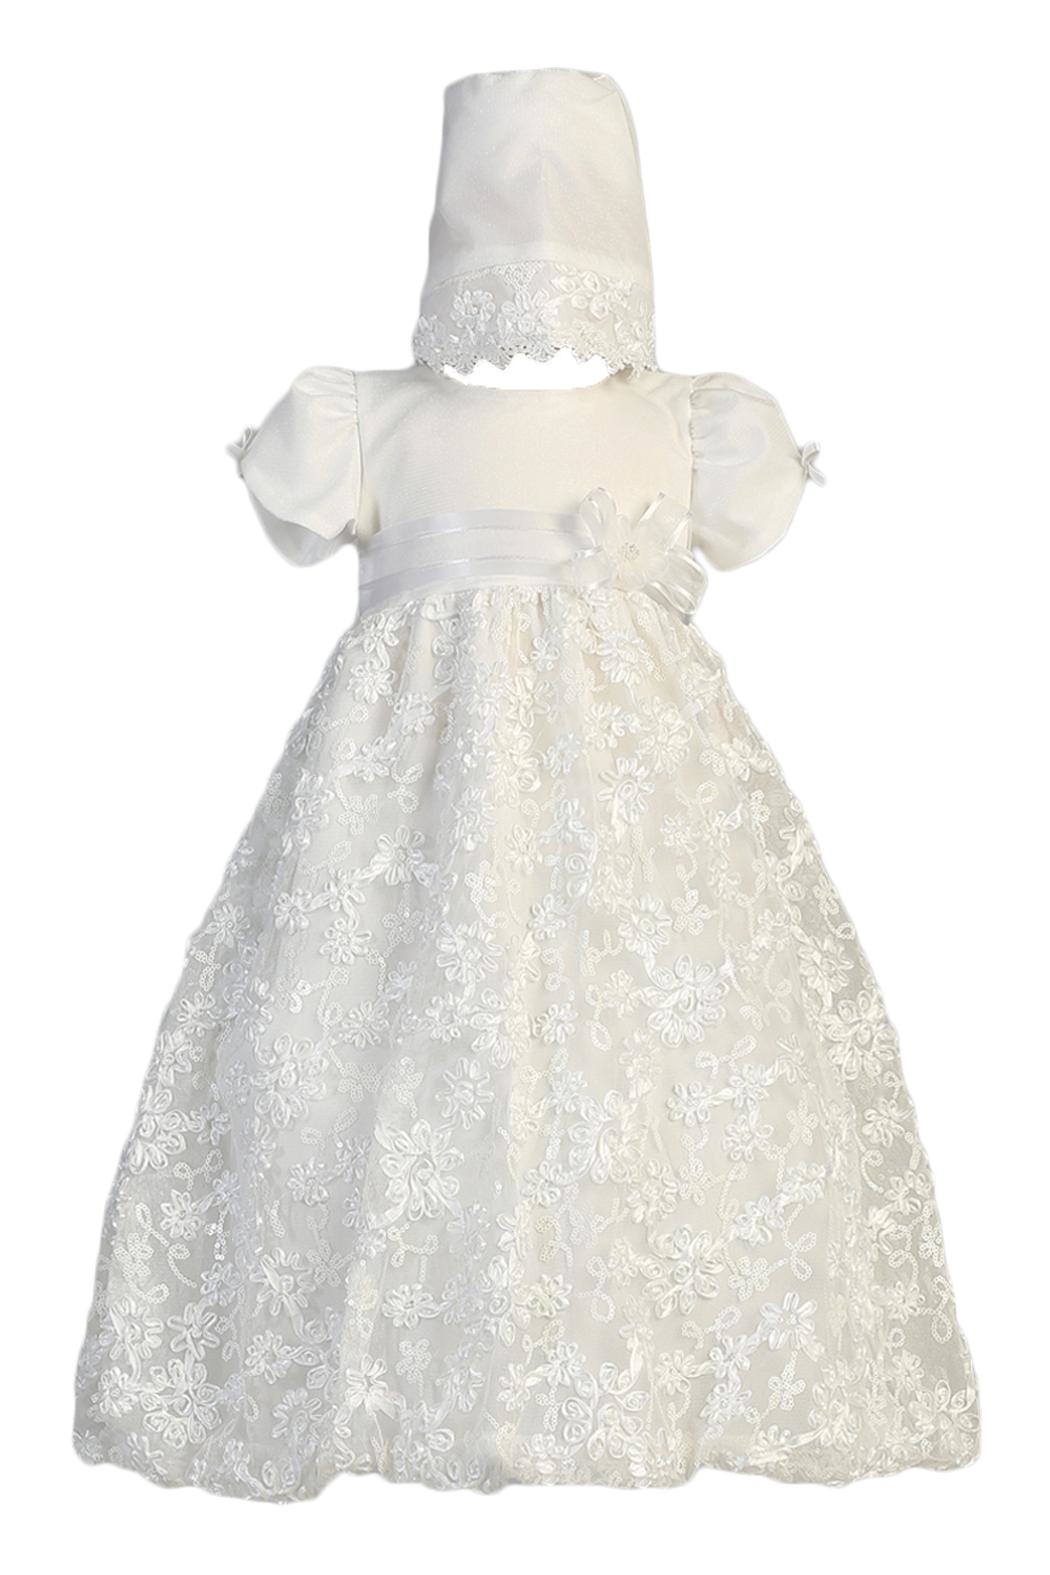 5c6116818 Lito Amber Christening Gown from Michigan by Connie's Children's ...